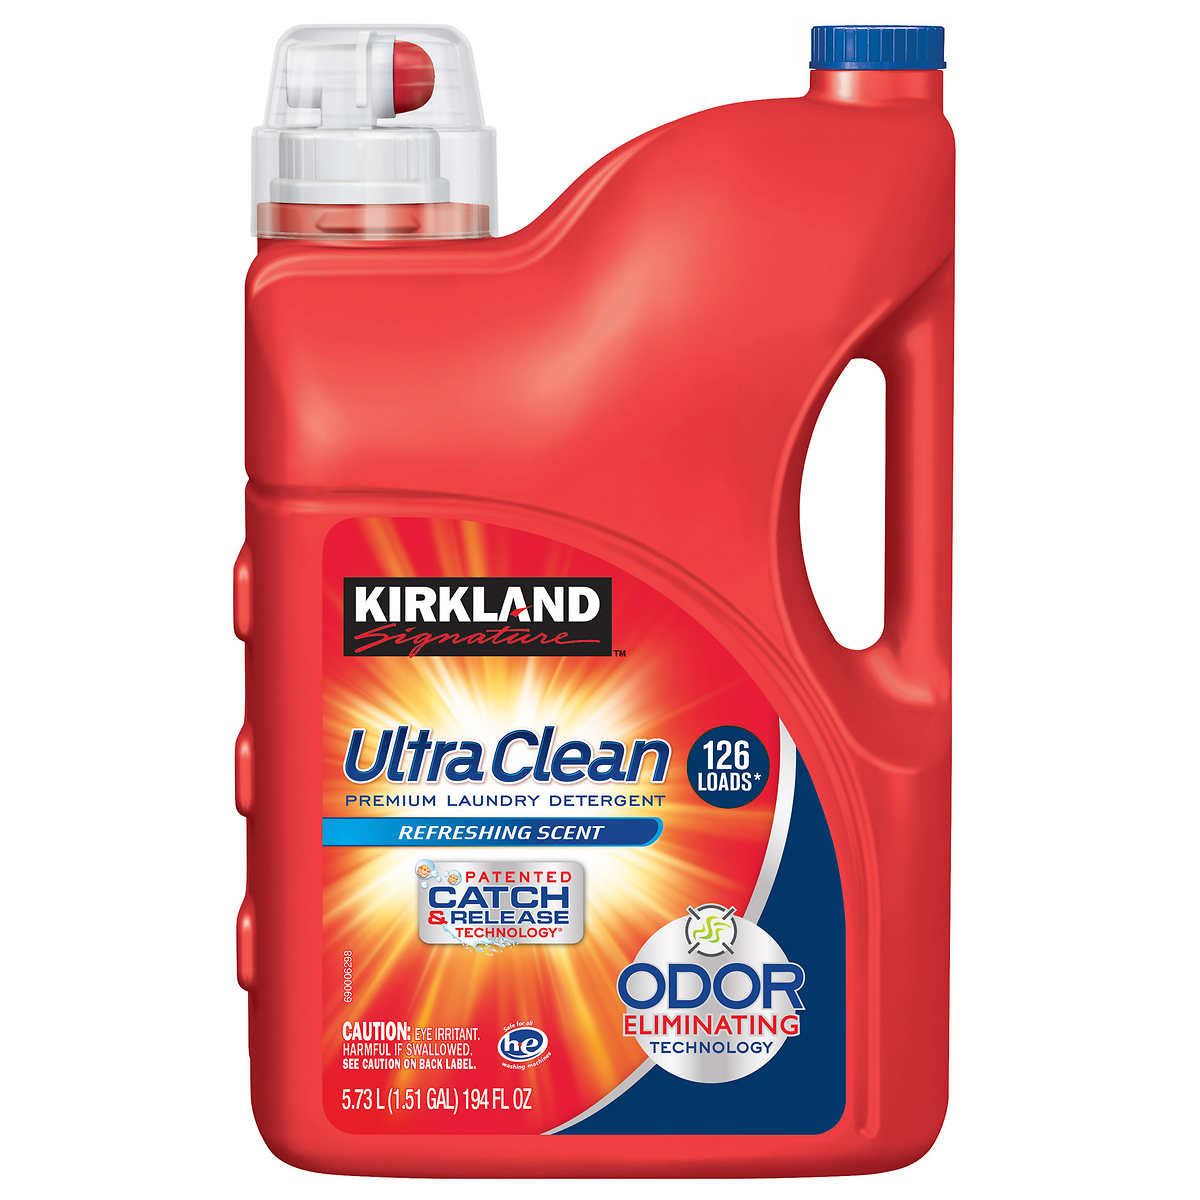 all ultra plus free clear liquid laundry detergent 237 fl oz 158